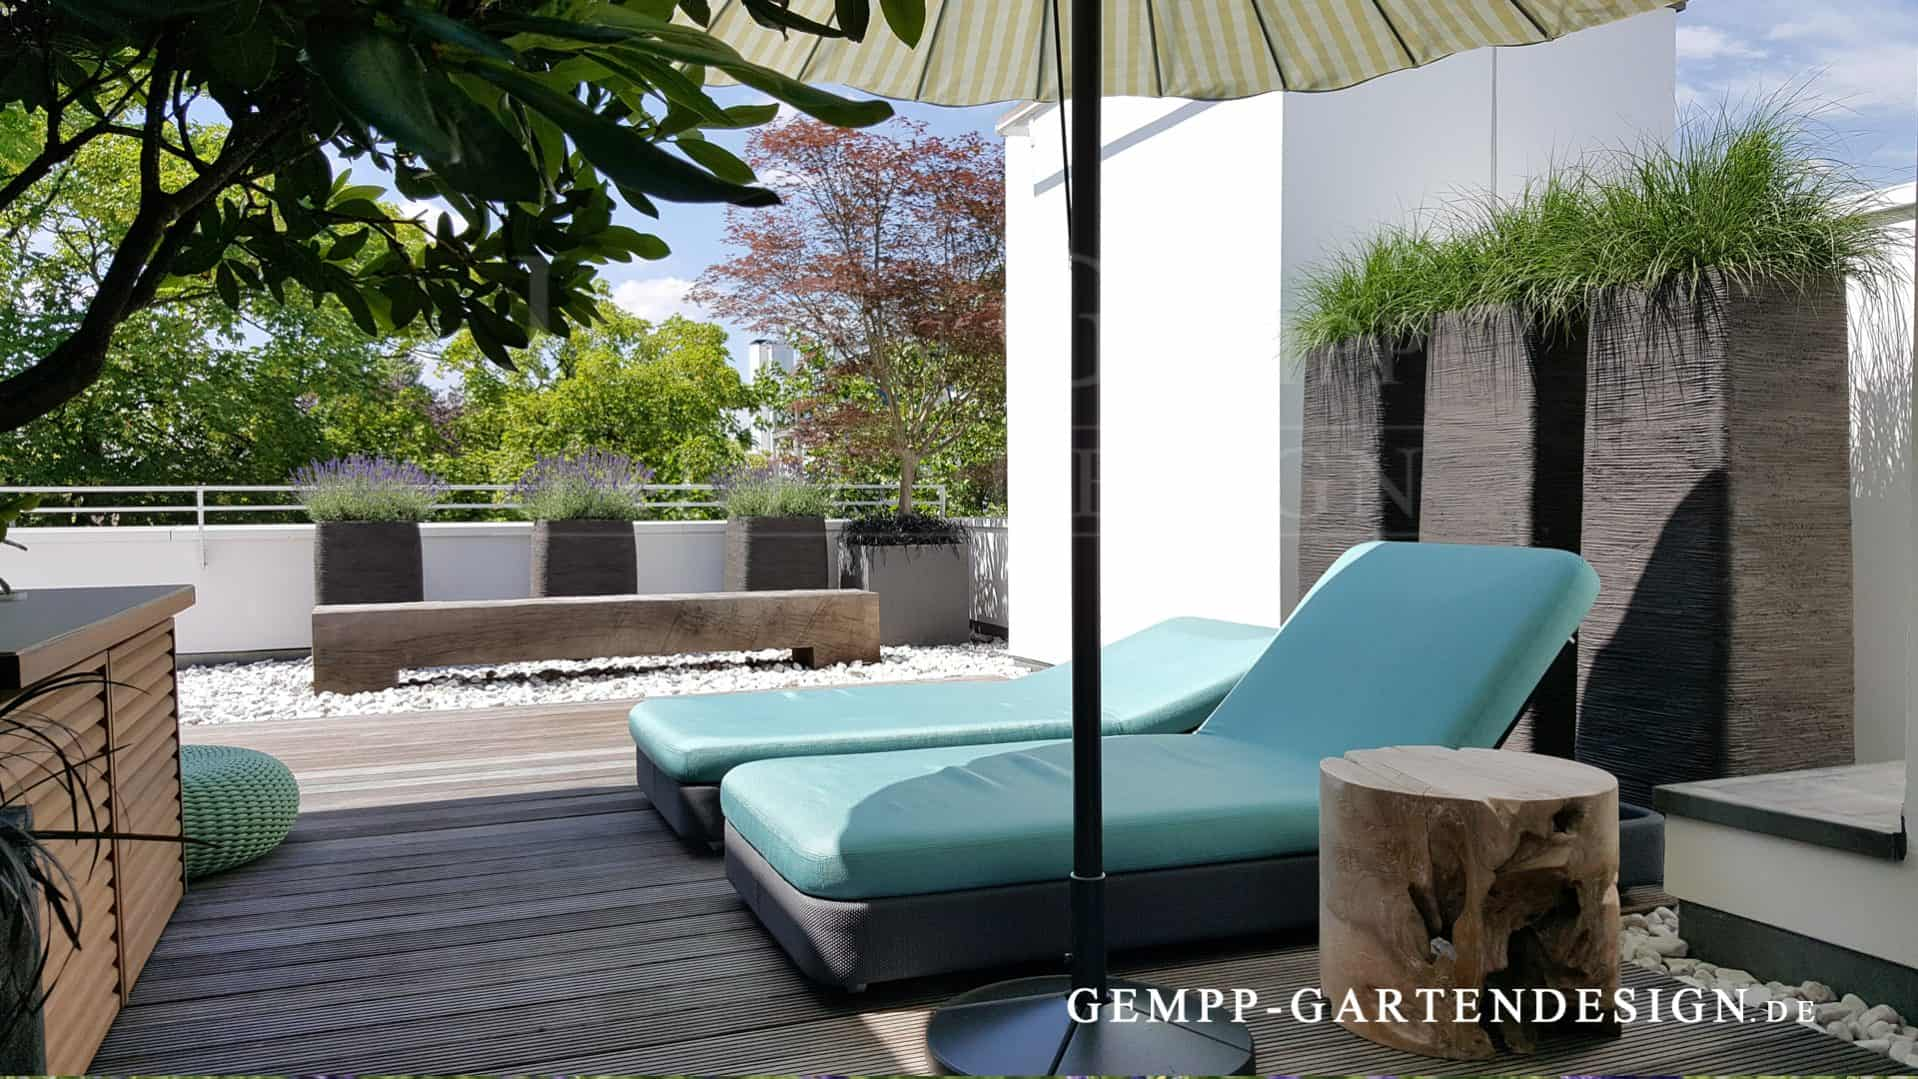 dachterrassen terrassengestaltungen gempp gartendesign. Black Bedroom Furniture Sets. Home Design Ideas